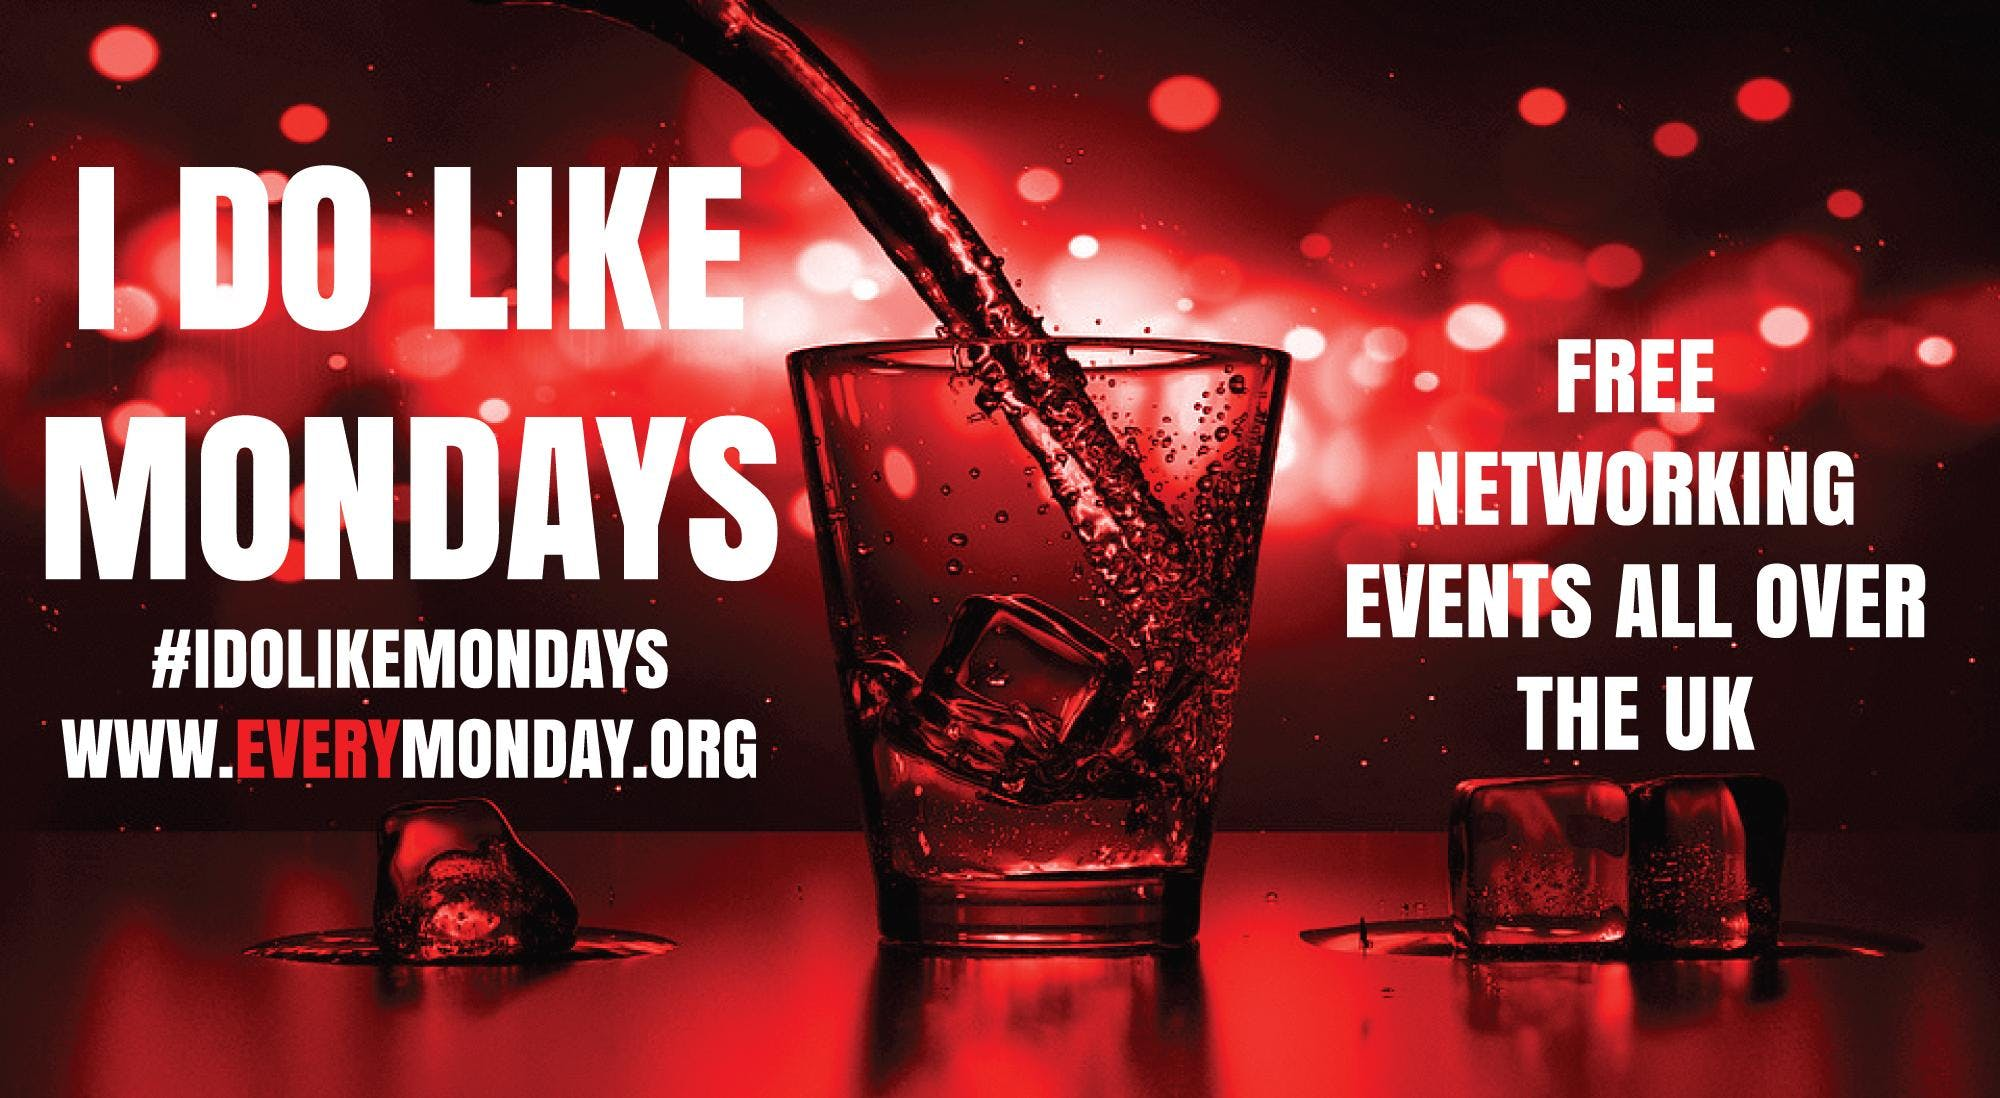 I DO LIKE MONDAYS! Free networking event in Otley